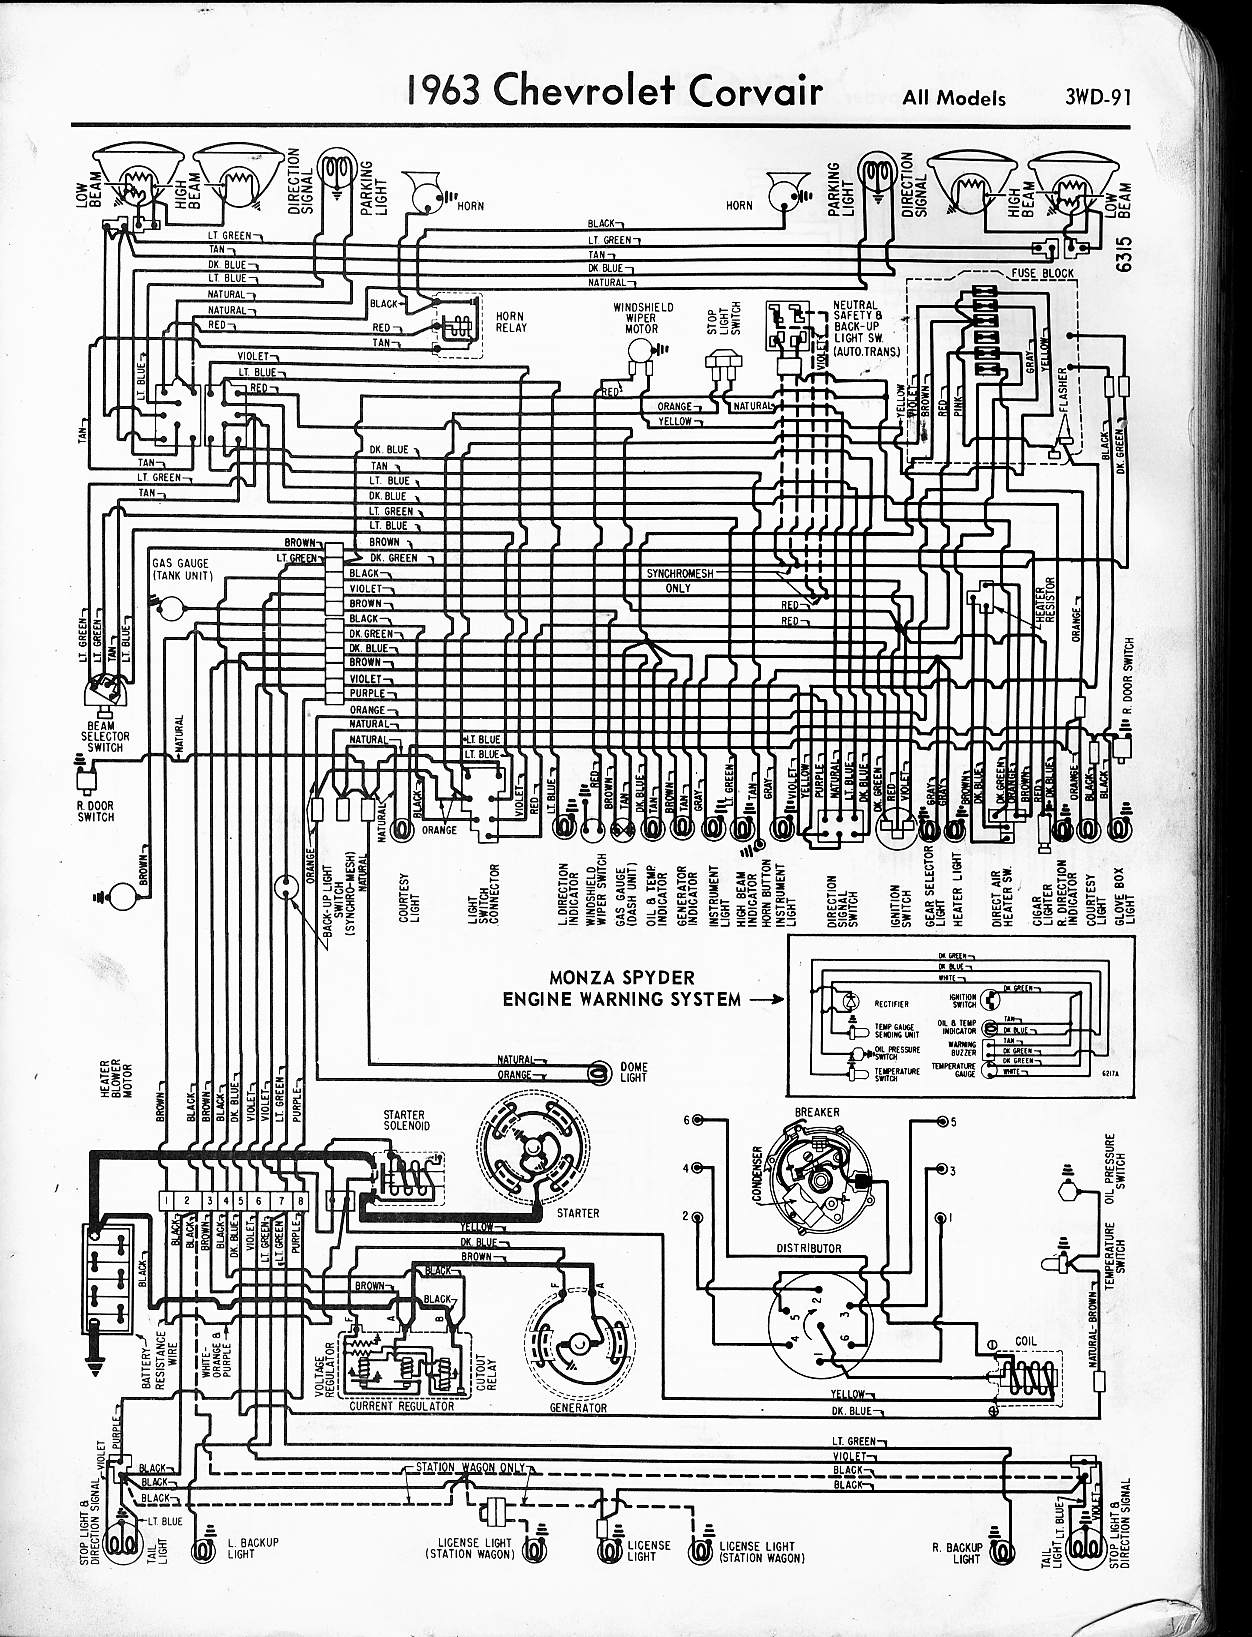 1965 Chevy Truck Wiring Diagram | Free Wiring Diagram